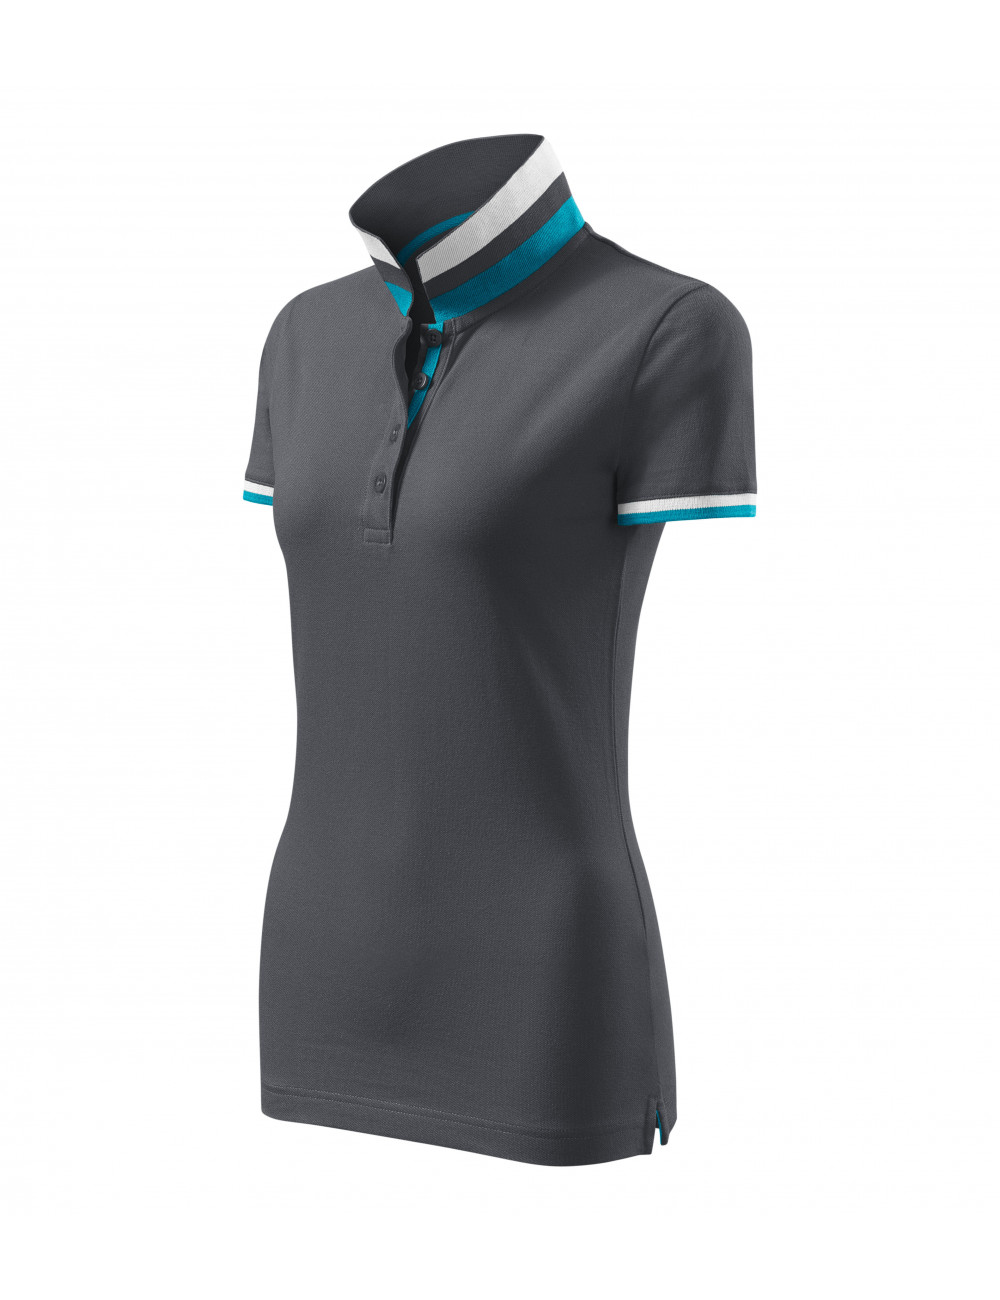 Adler MALFINIPREMIUM Koszulka polo damska Collar Up 257 light anthracite